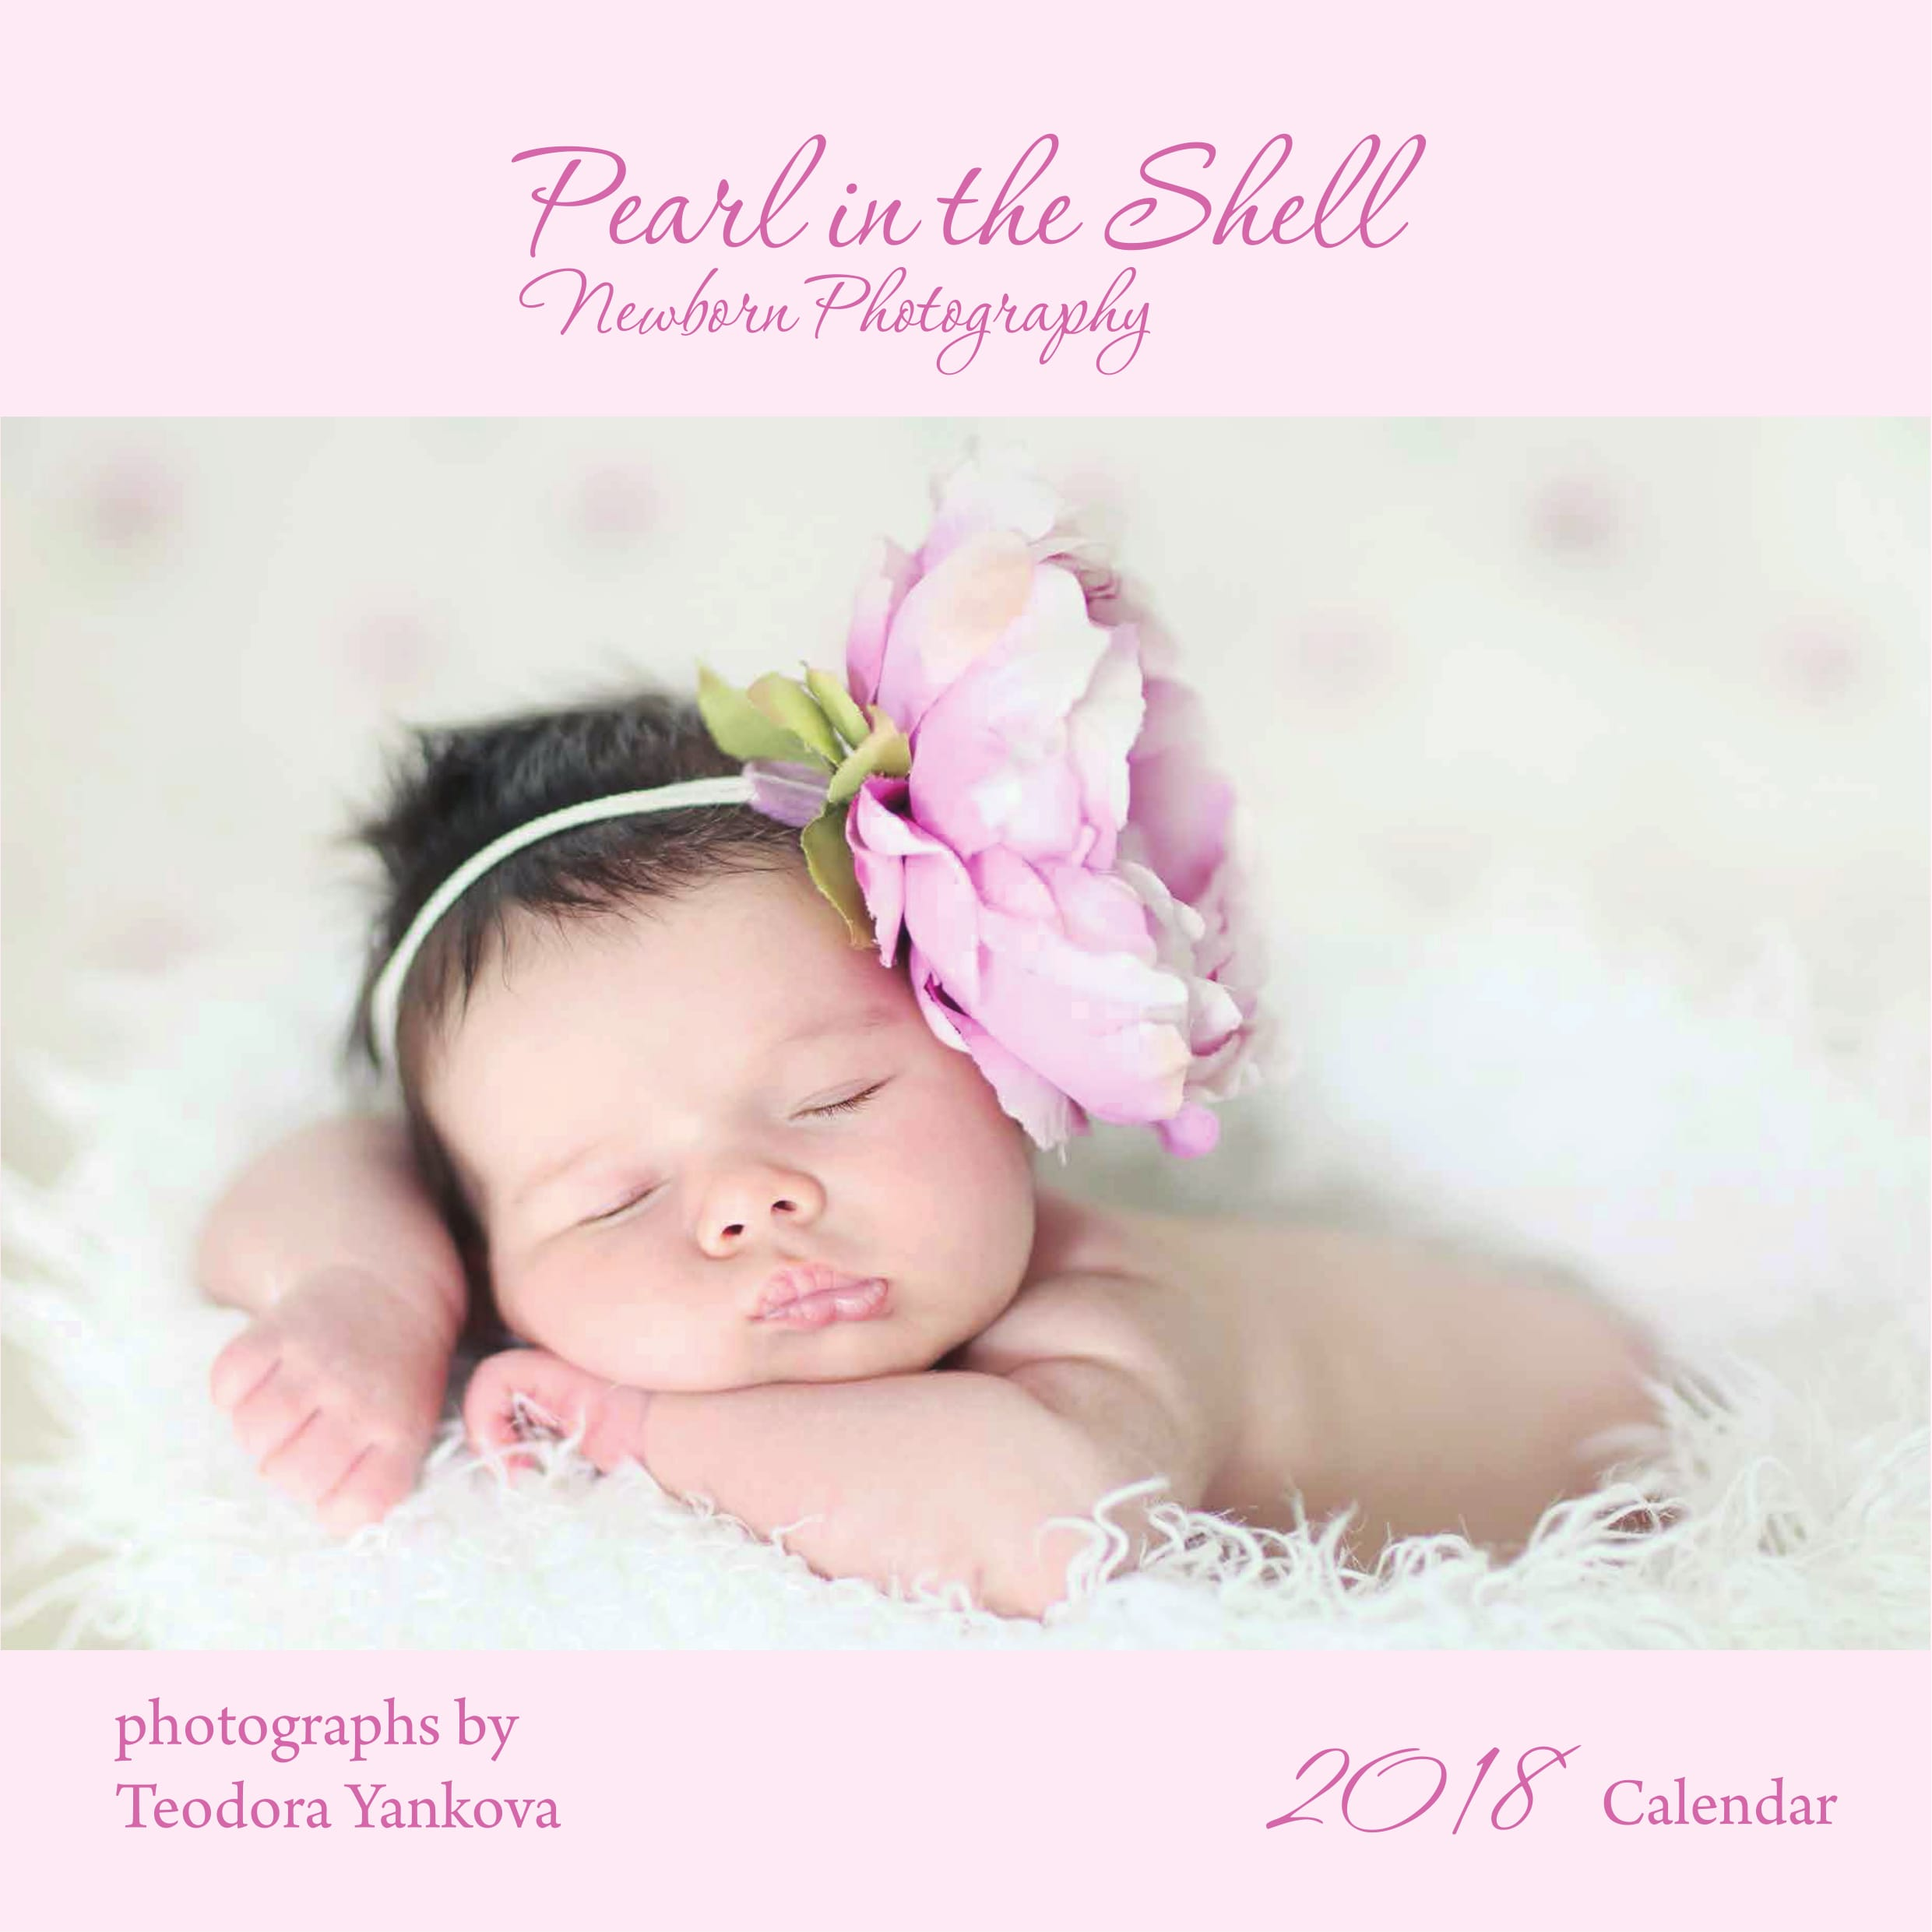 Pearl_in_the_Shell_Calendar_2018-01